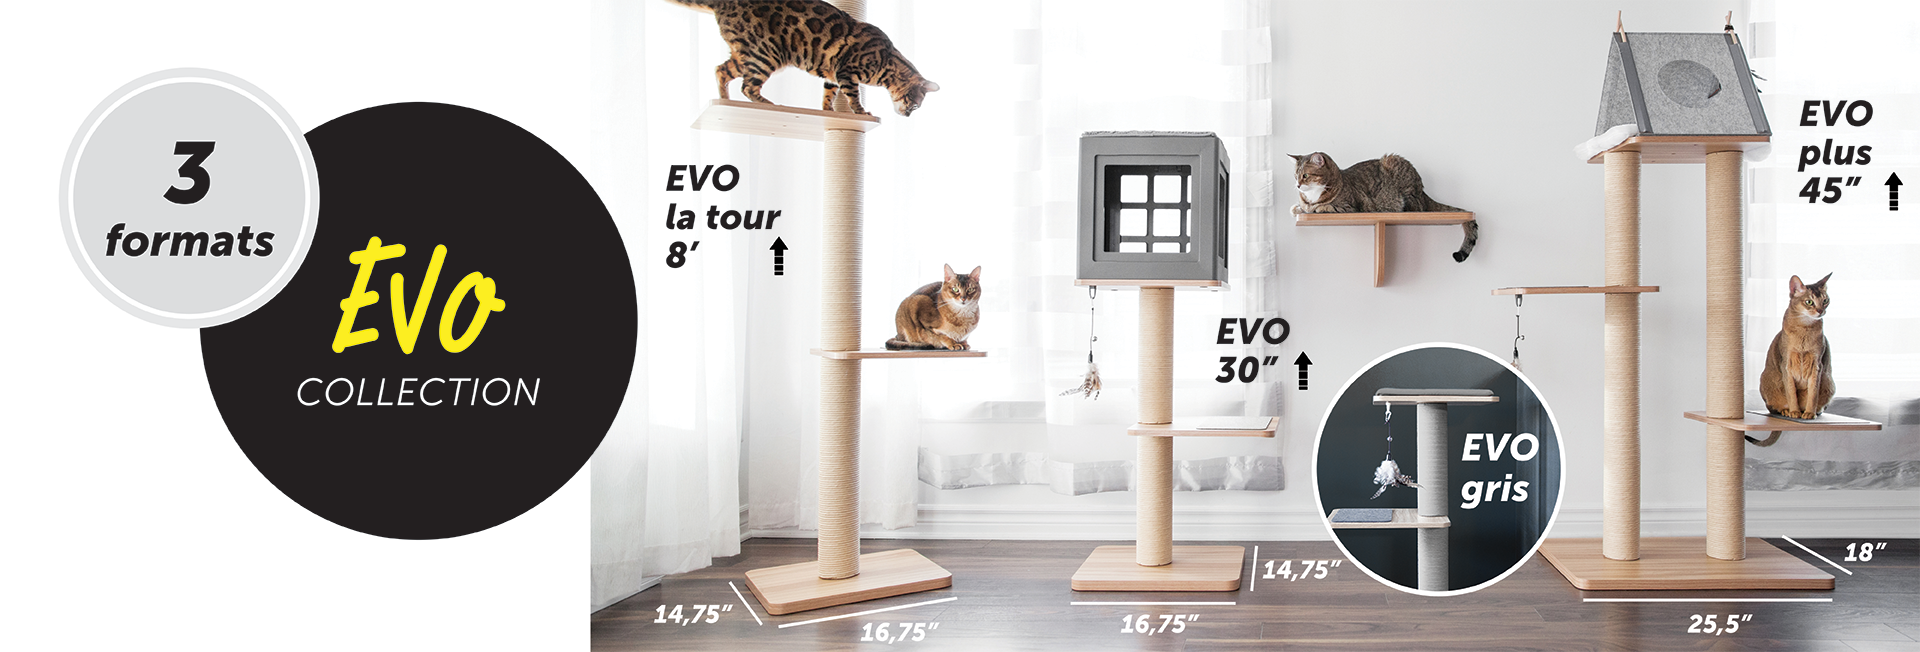 Katt3-evo-gray-possibilities-for-cats-french